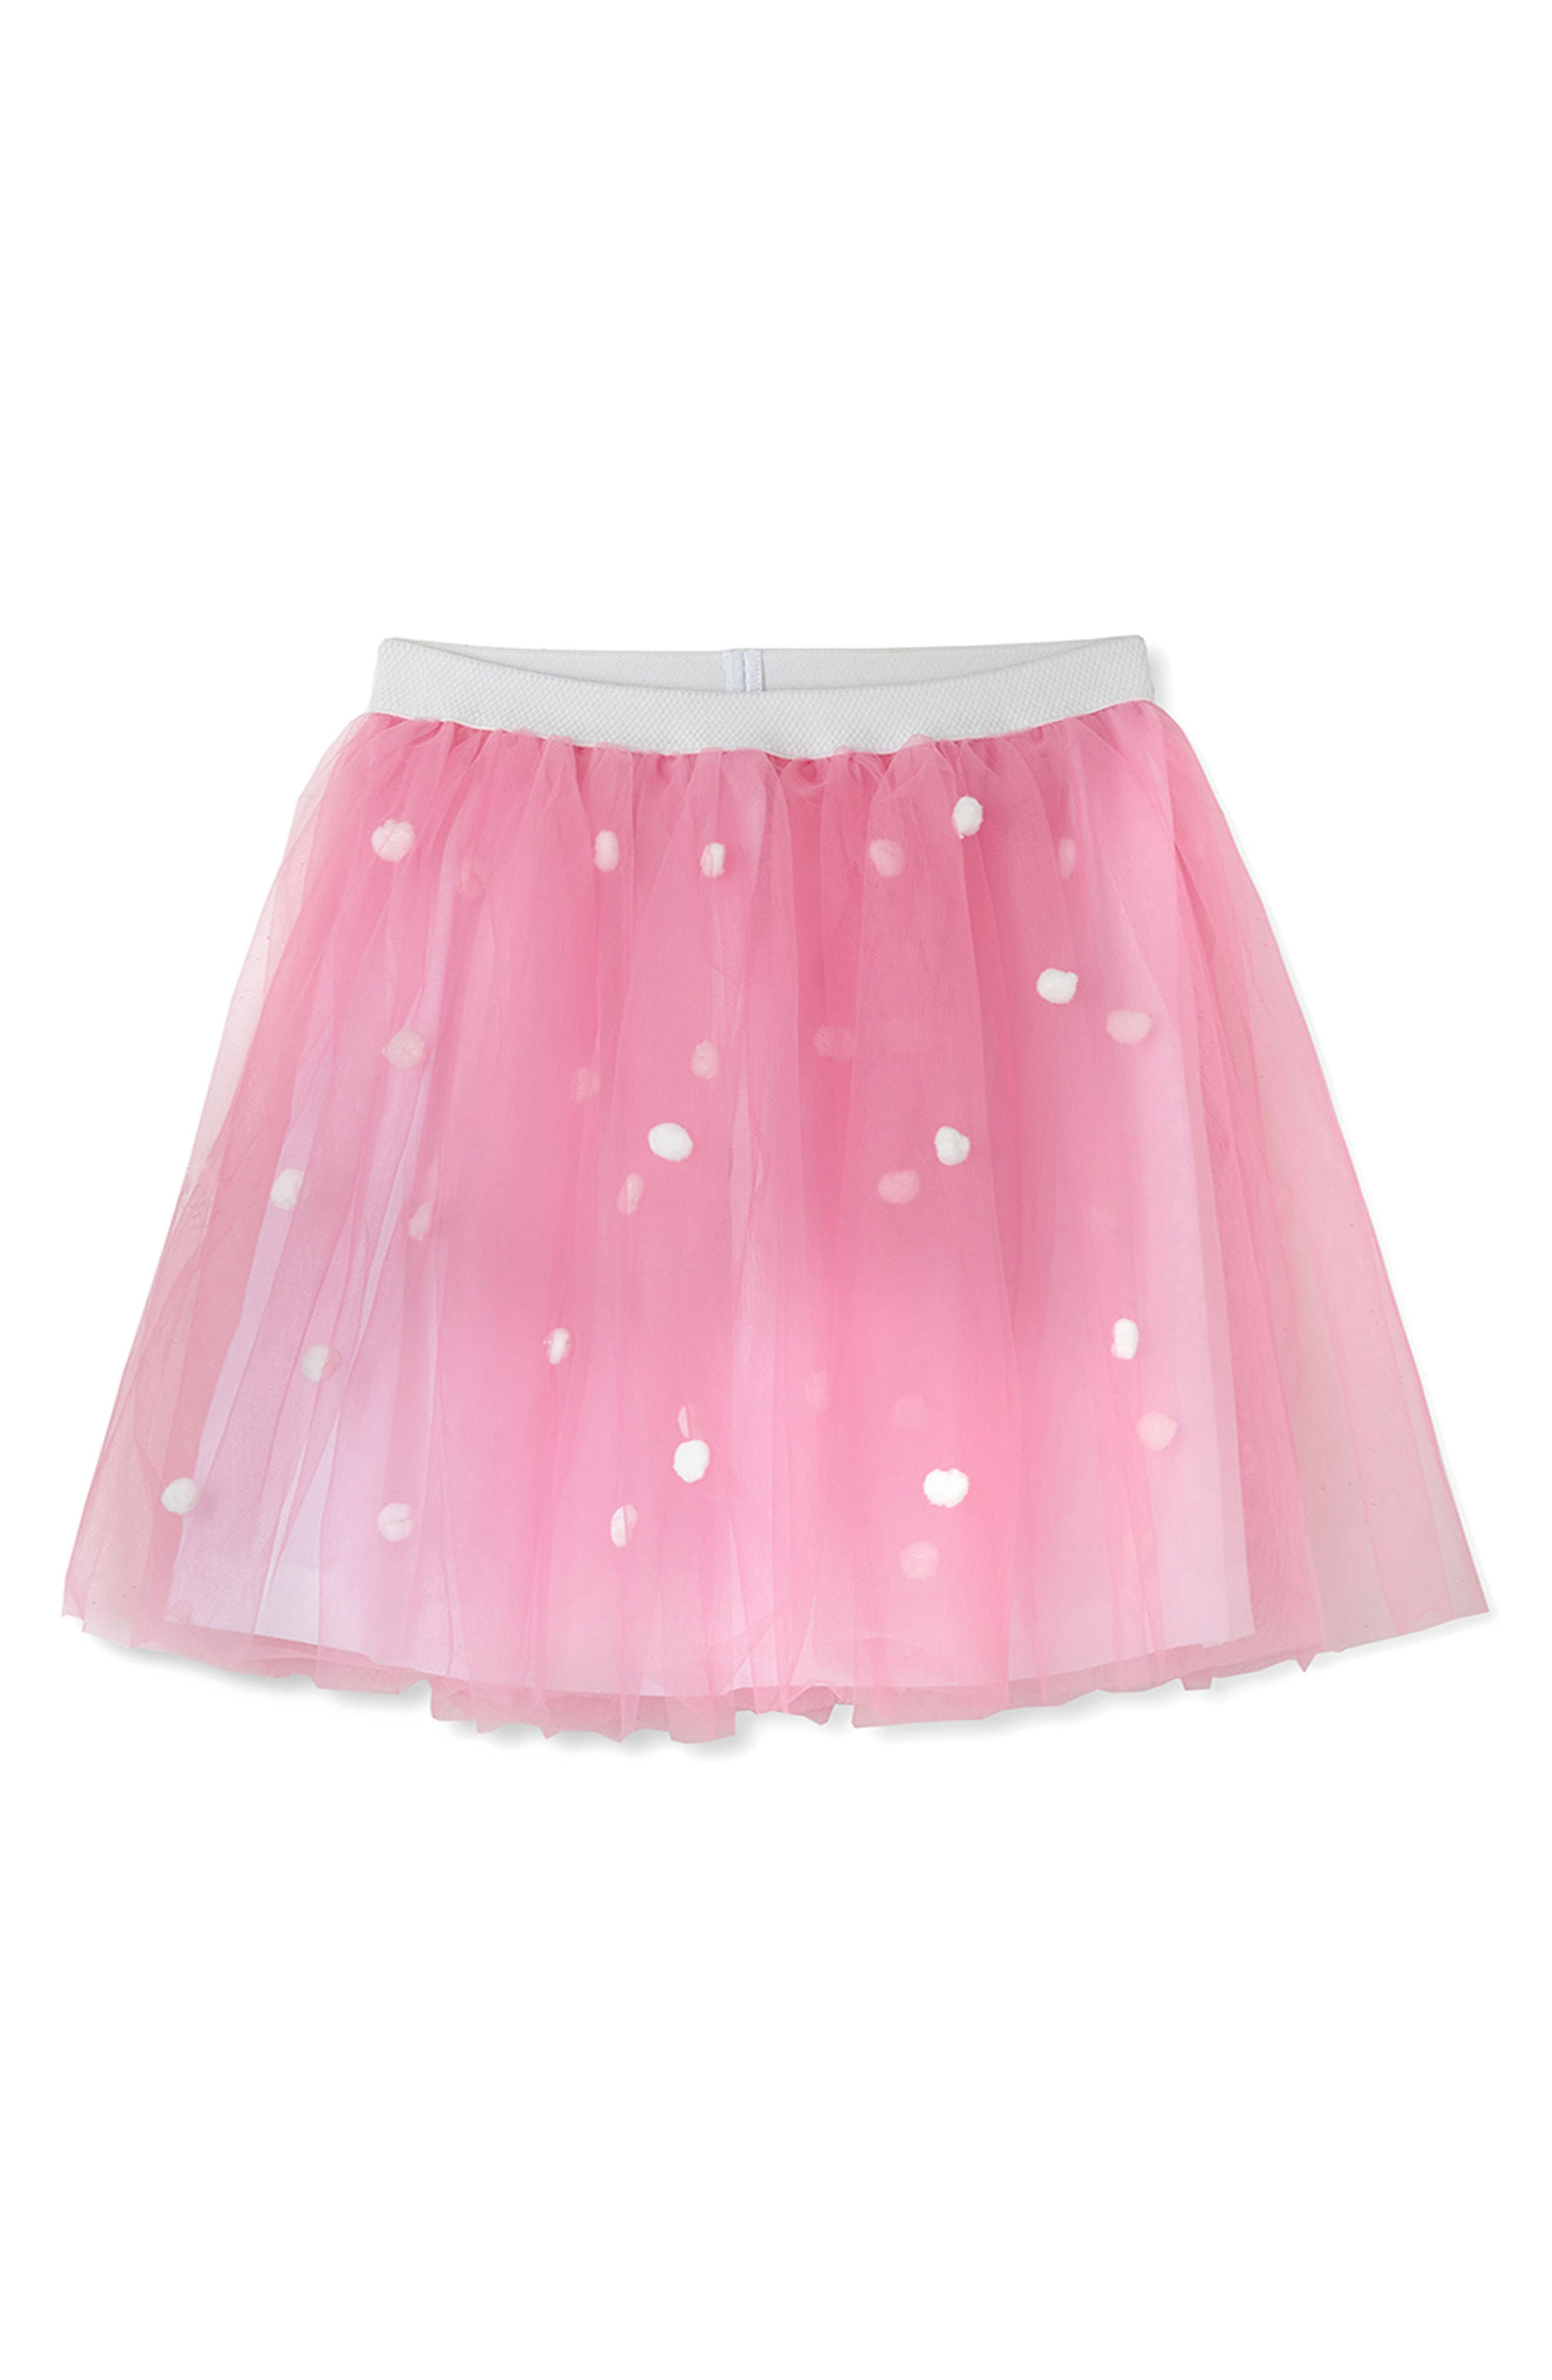 Alternate Image 1 Selected - Stella Cove Tulle Skirt (Toddler Girls & Little Girls)